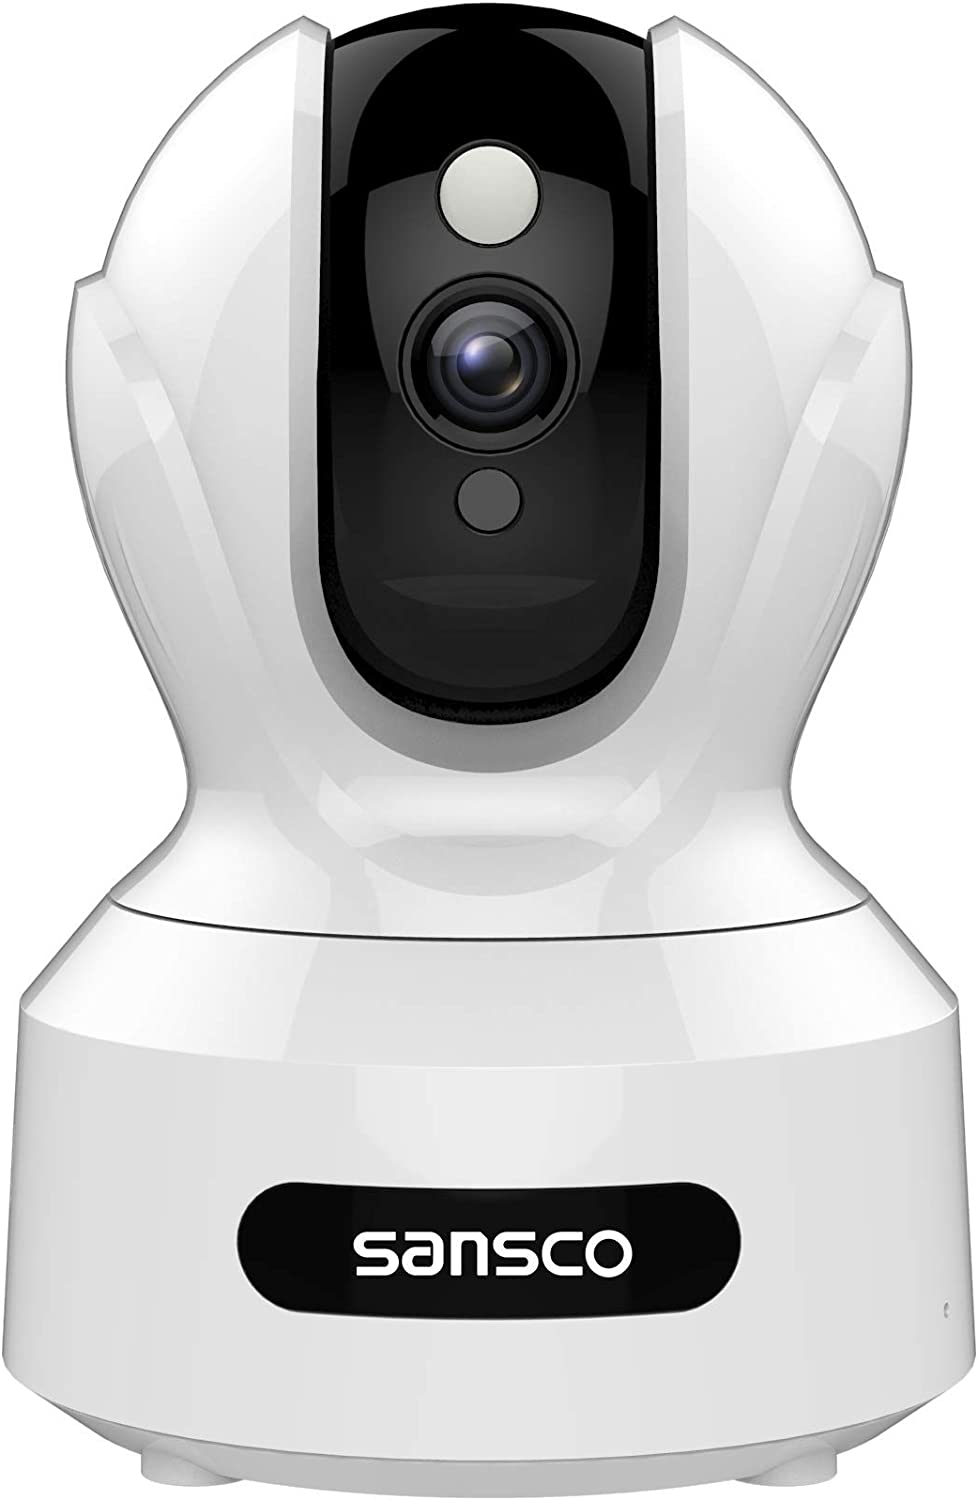 SANSCO 2MP 1920x1080p Indoor Wireless Security Camera Home Monitor WiFi Camera for Pet Baby Surveillance IP Camera with IR Night Vision, Motion Detection Push Alerts and Two-Way Audio White